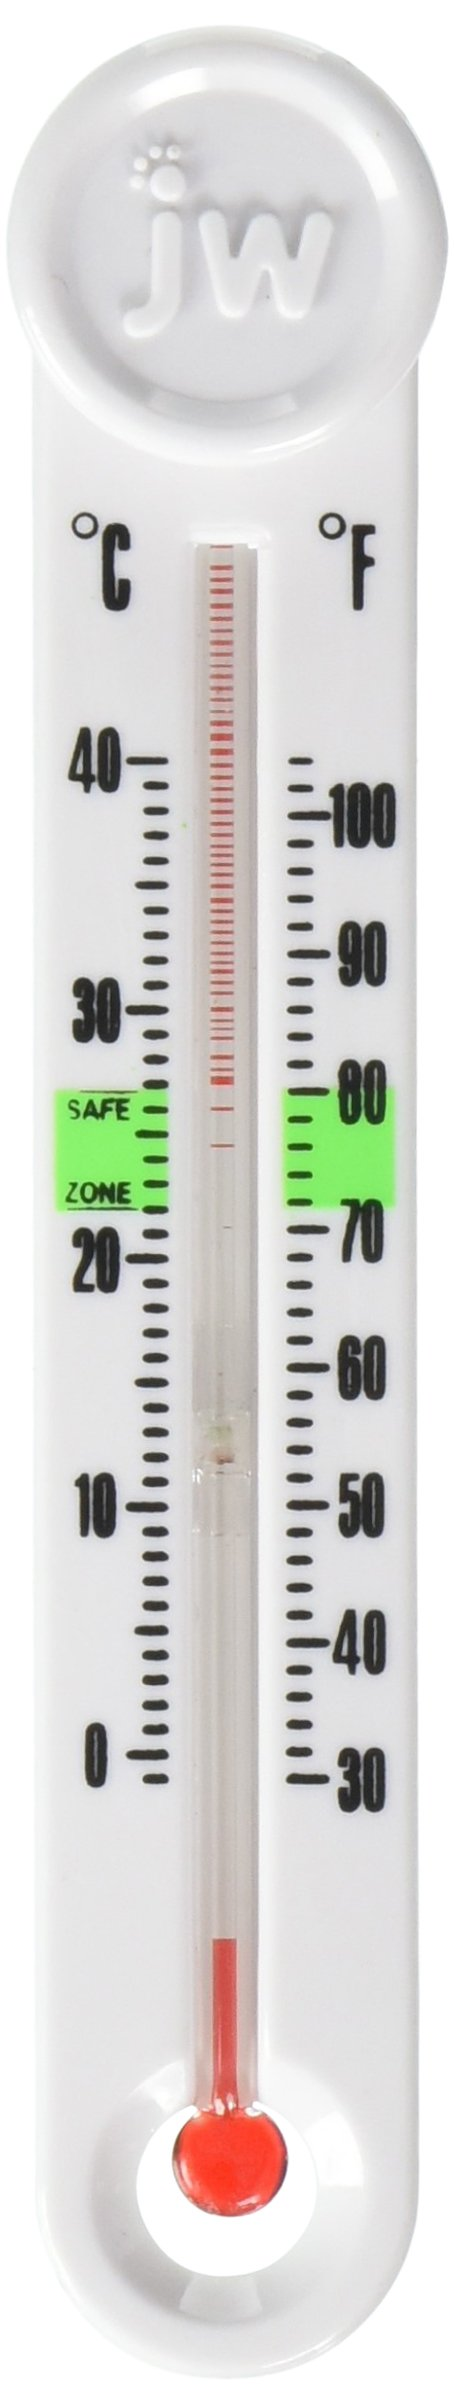 JW Pet Smarttemp Thermometer Accessory